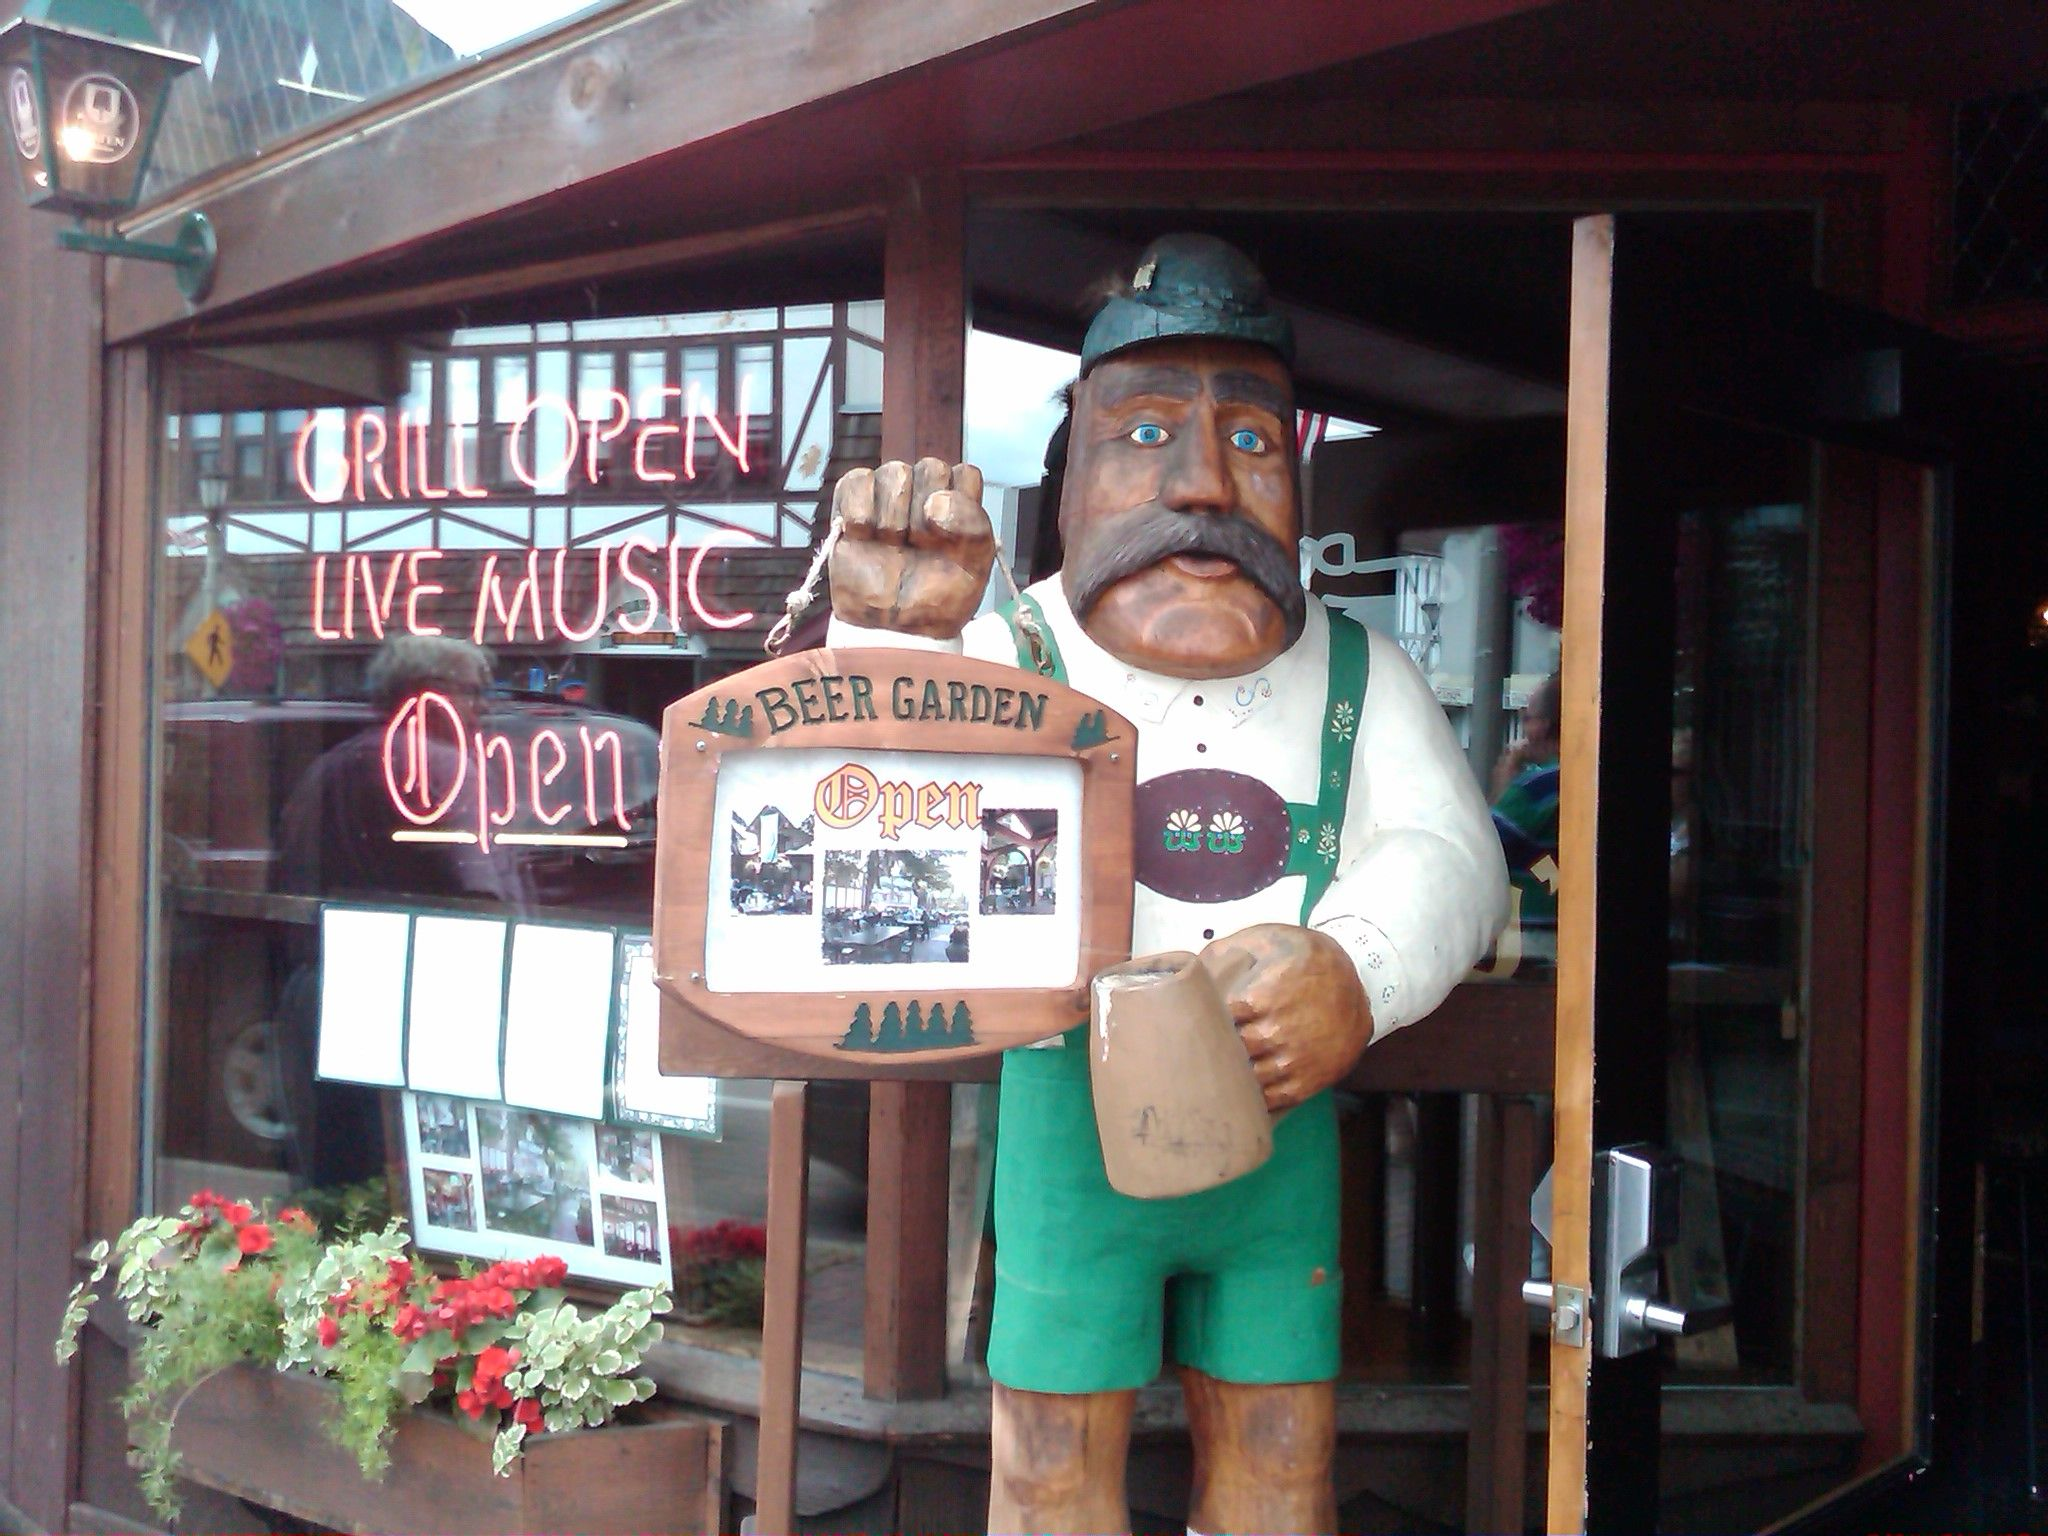 Favorite place to eat love ottos minocqua places to